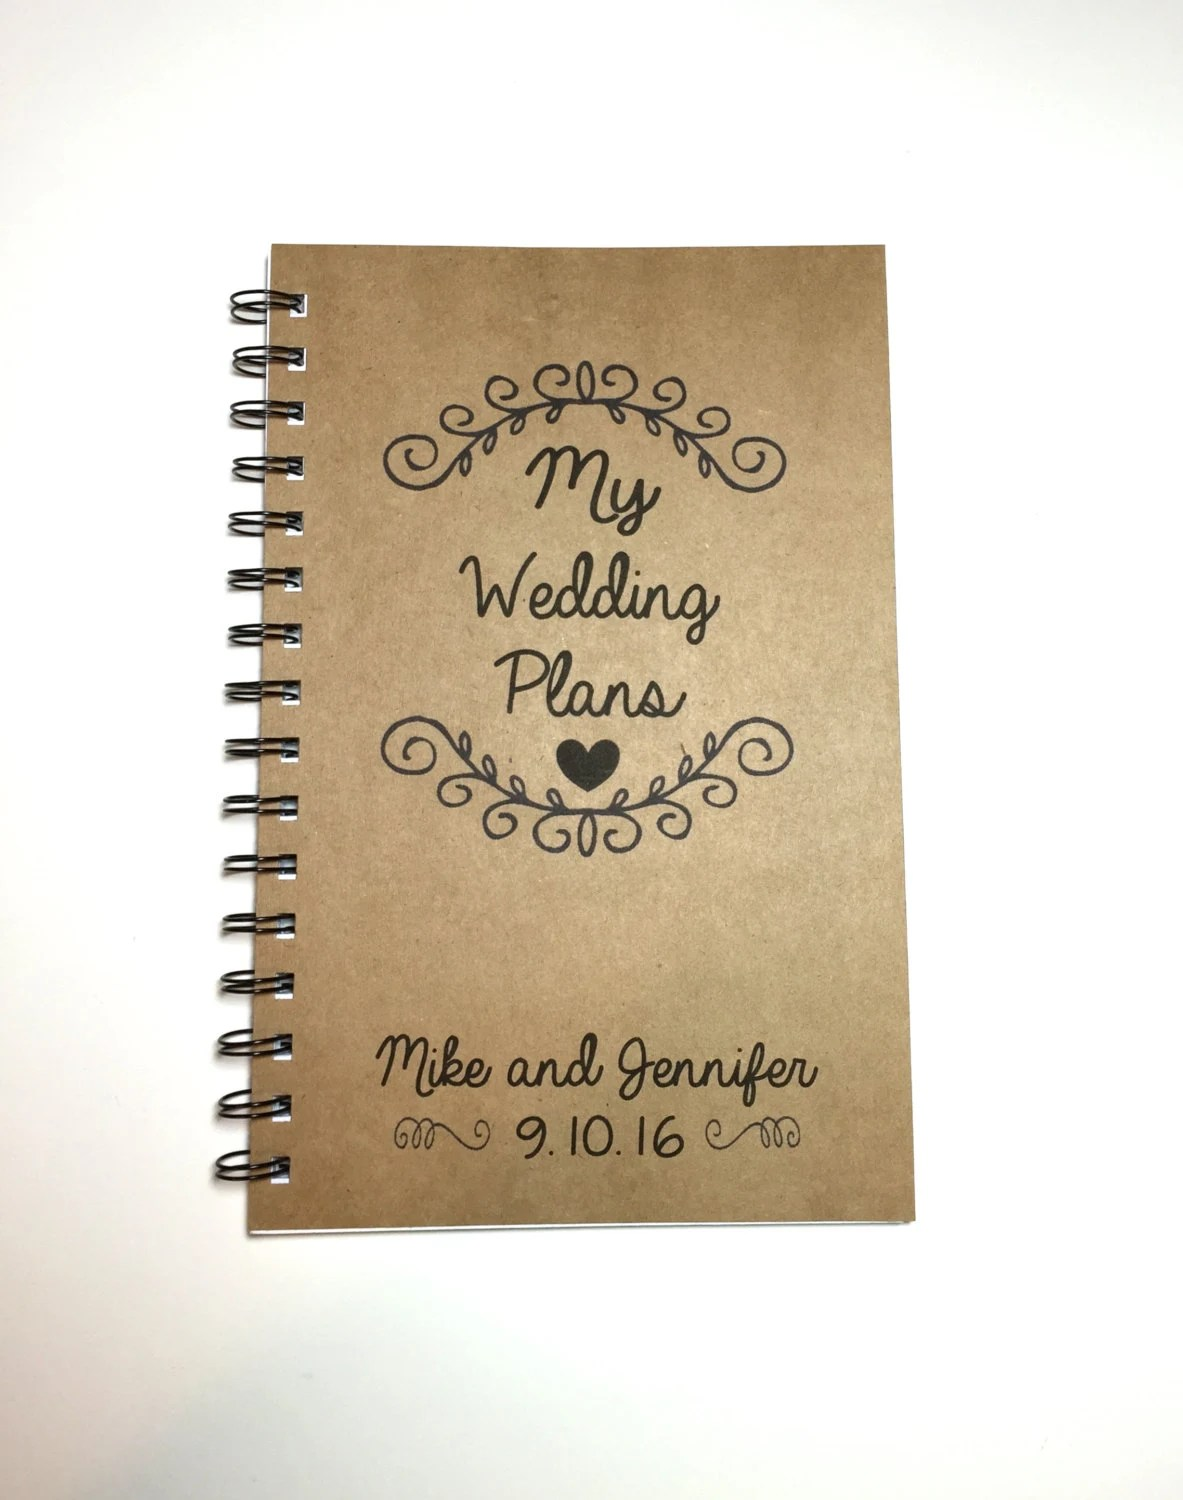 personalized wedding planner book - Wedding Decor Ideas - Wedding Plans